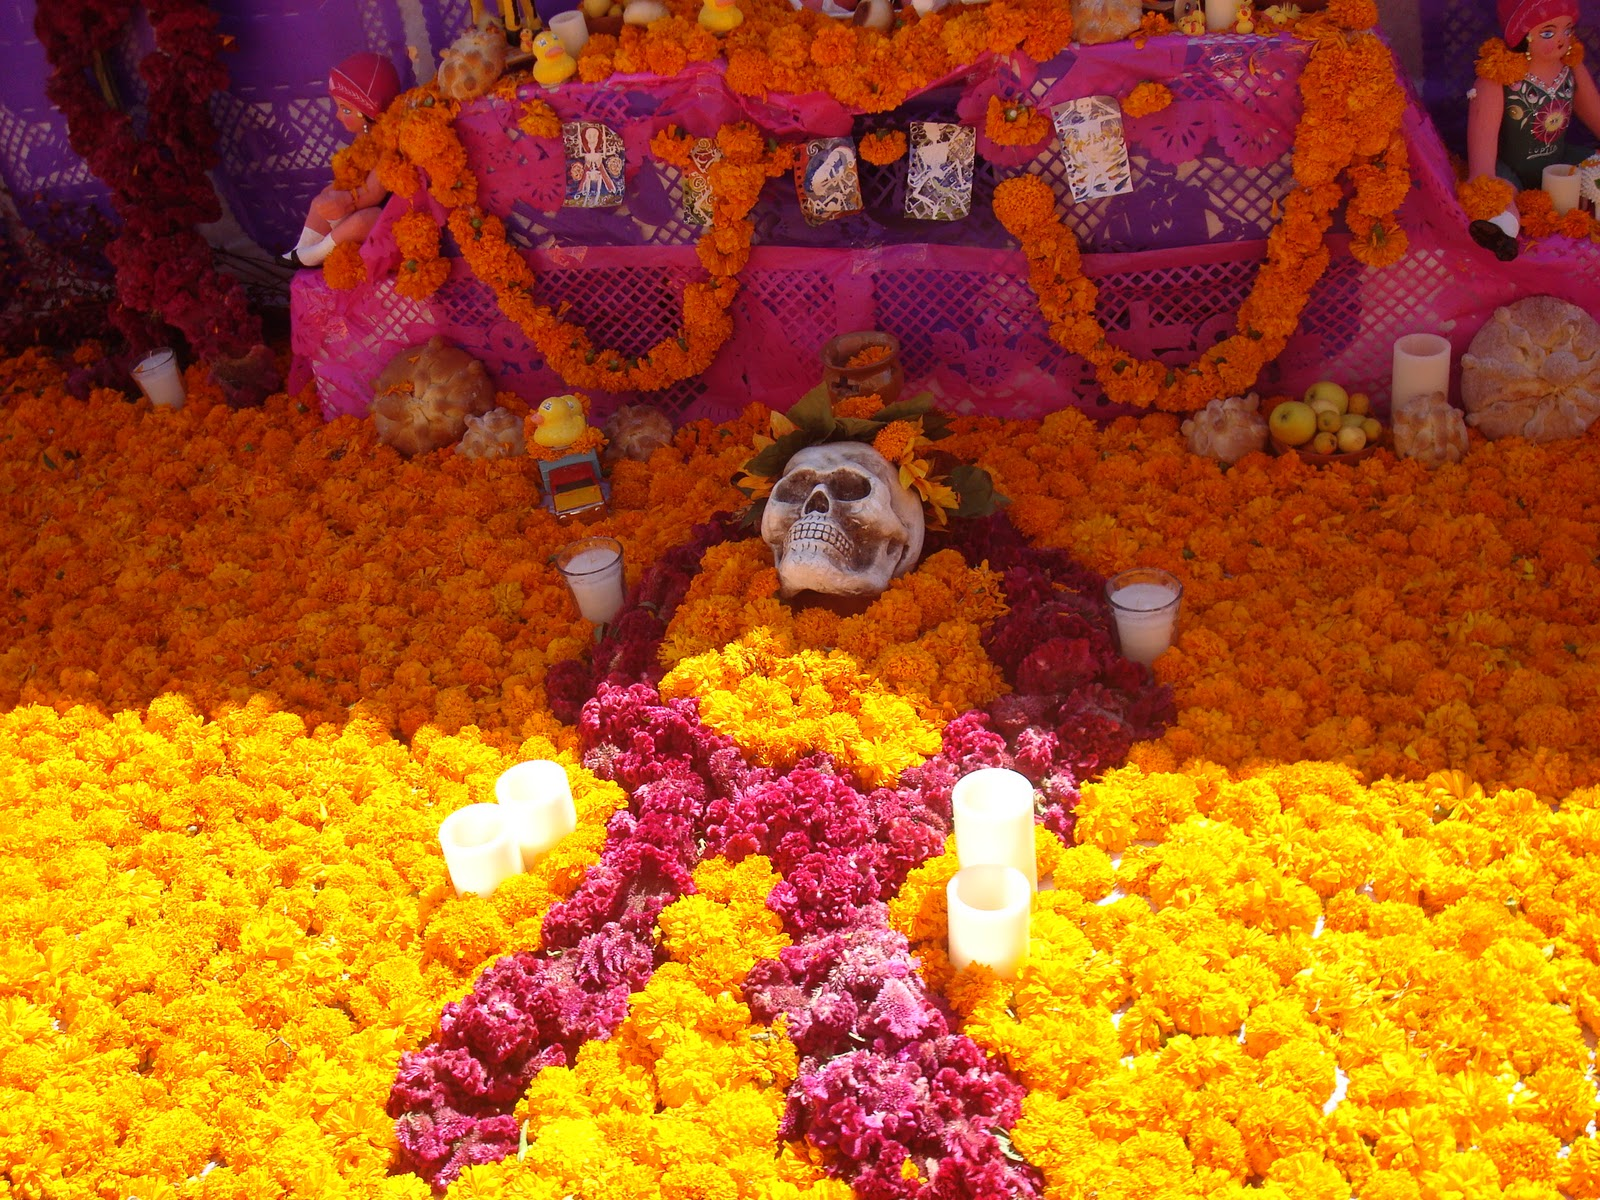 Flavors of the Sun: Images from Day of the Dead